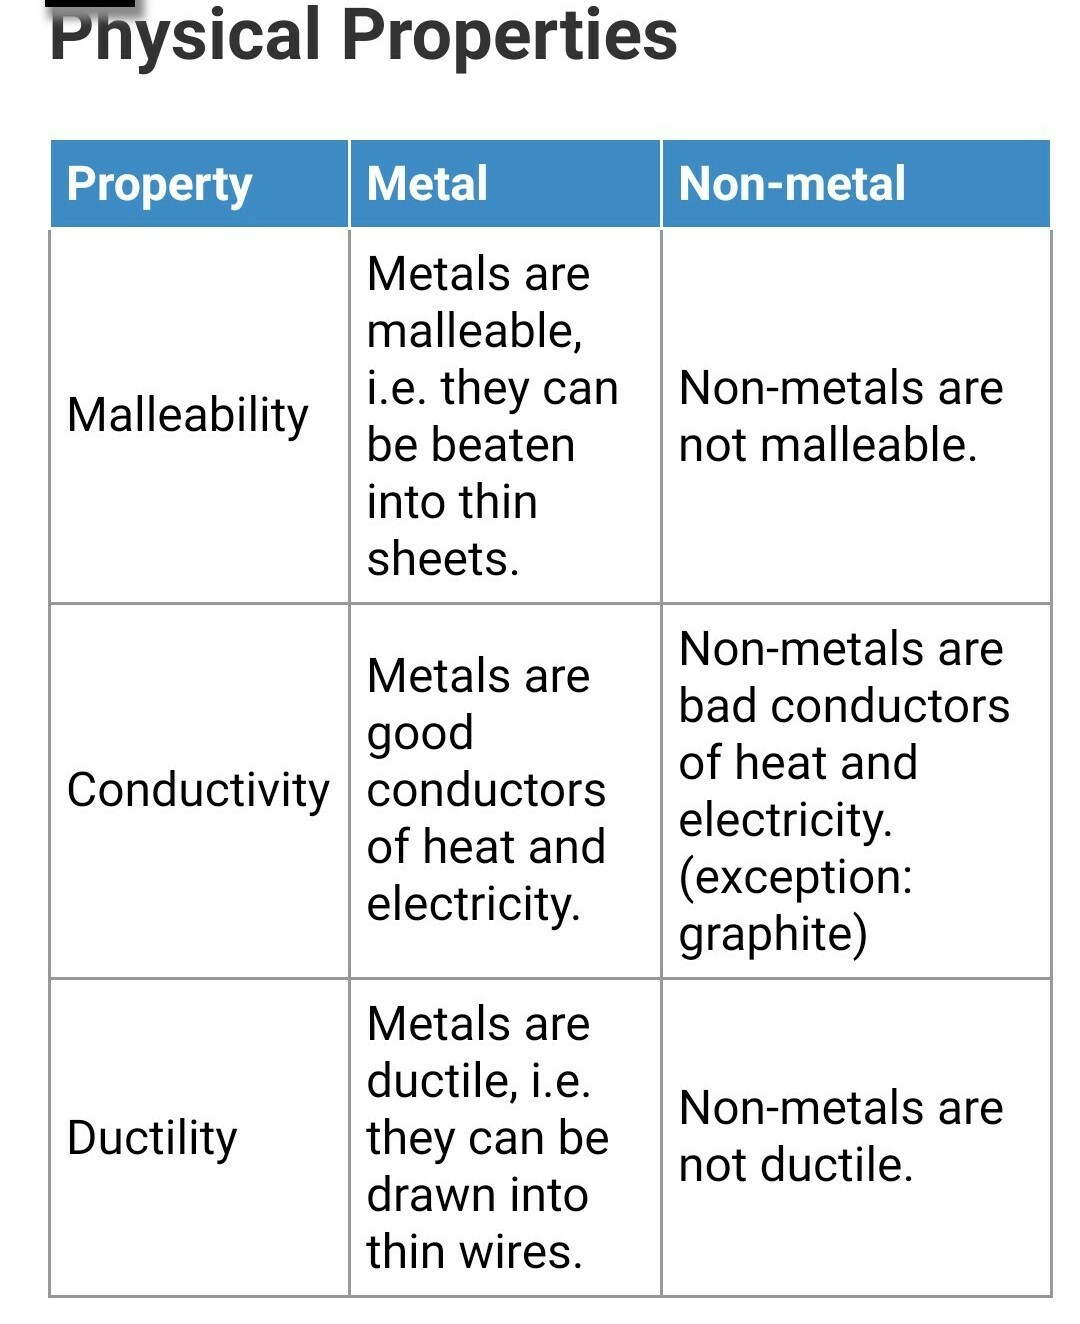 differentiate between metals and nonmetals on the basis of following